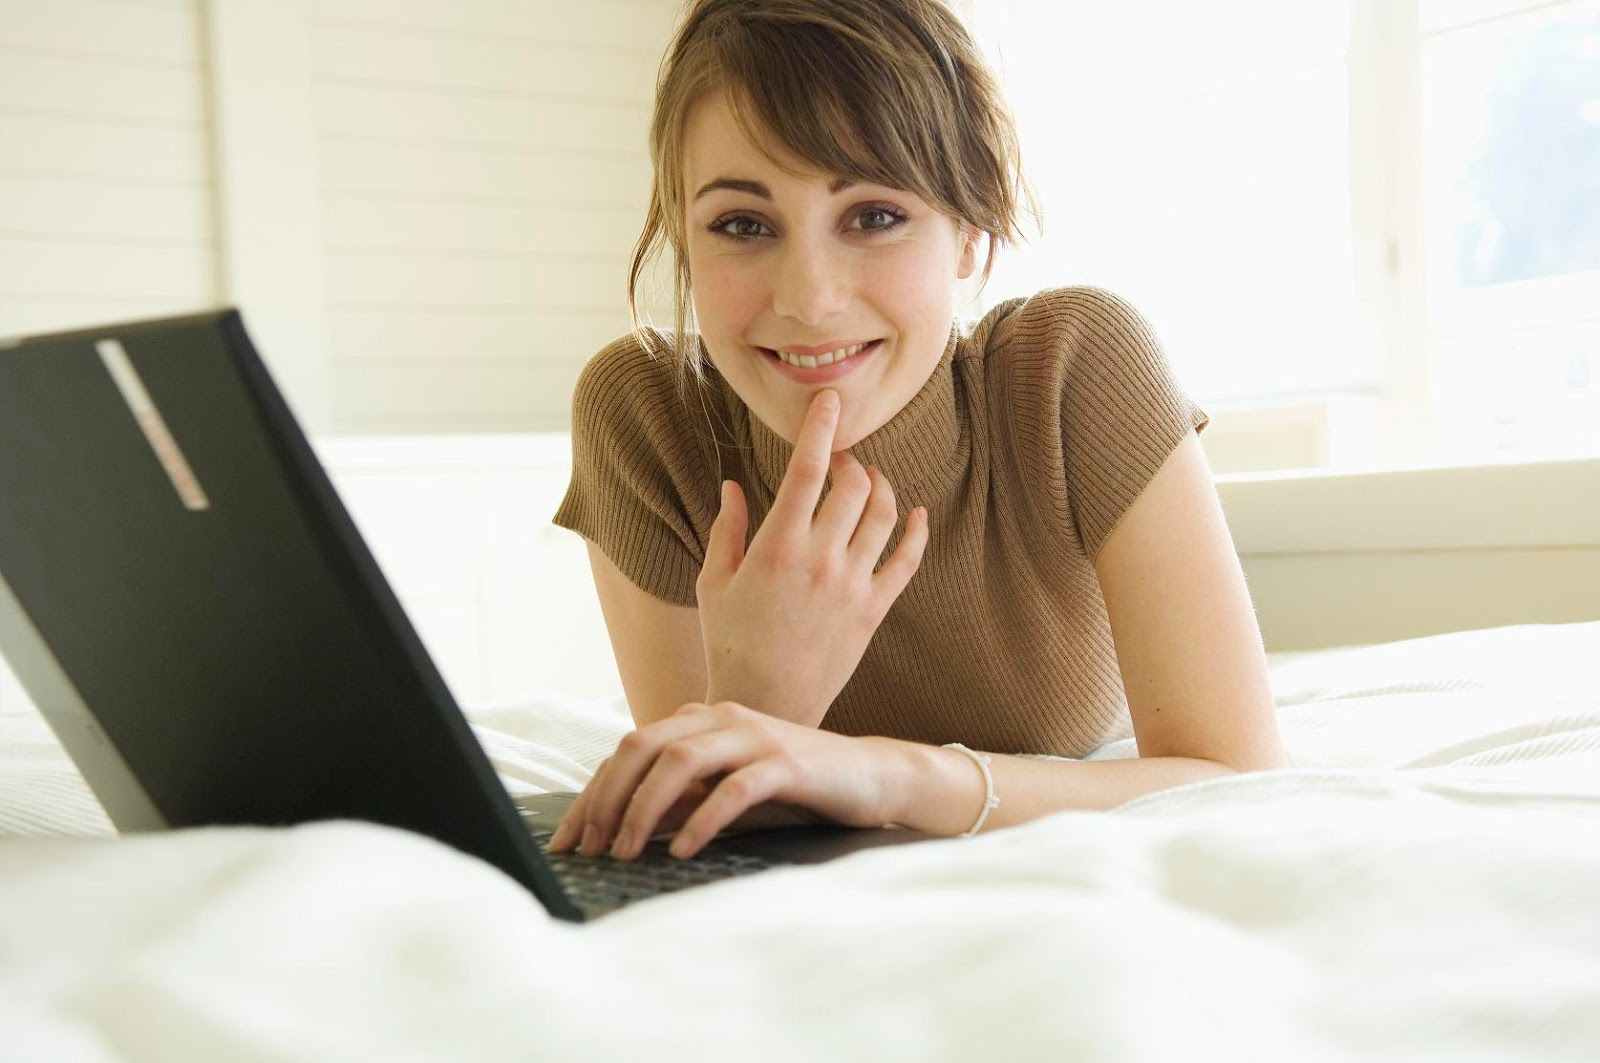 Online dating how to do it right